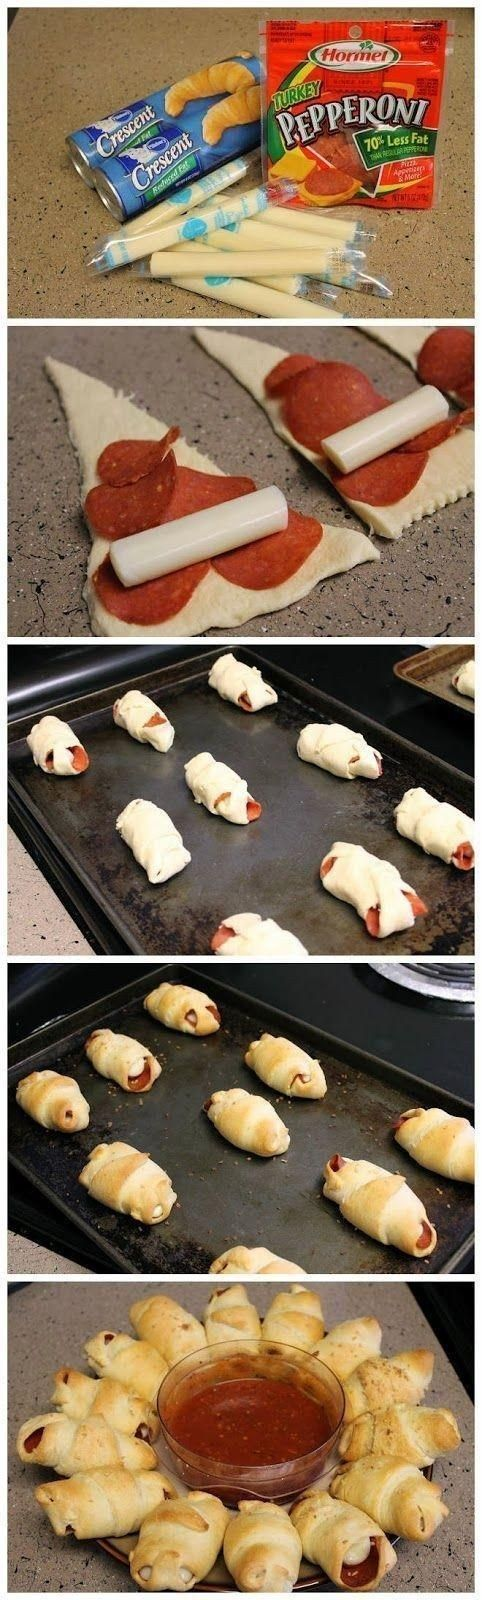 You need just four ingredients to whip up a batch of these super easy pepperoni pizza rolls.